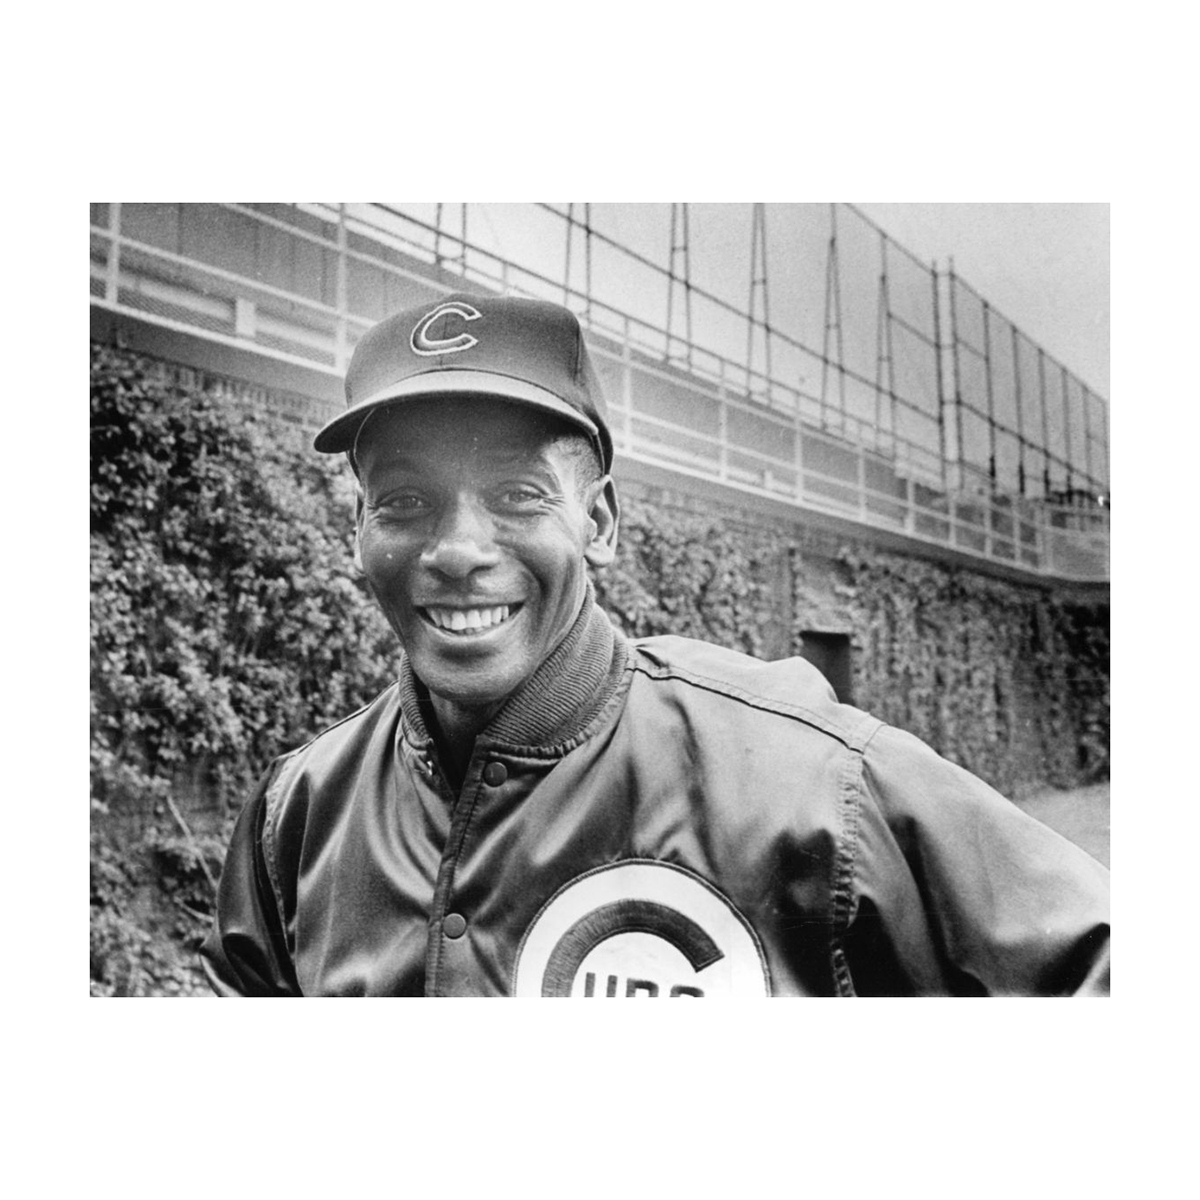 Ernie Banks at Wrigley Field 1970 Photograph